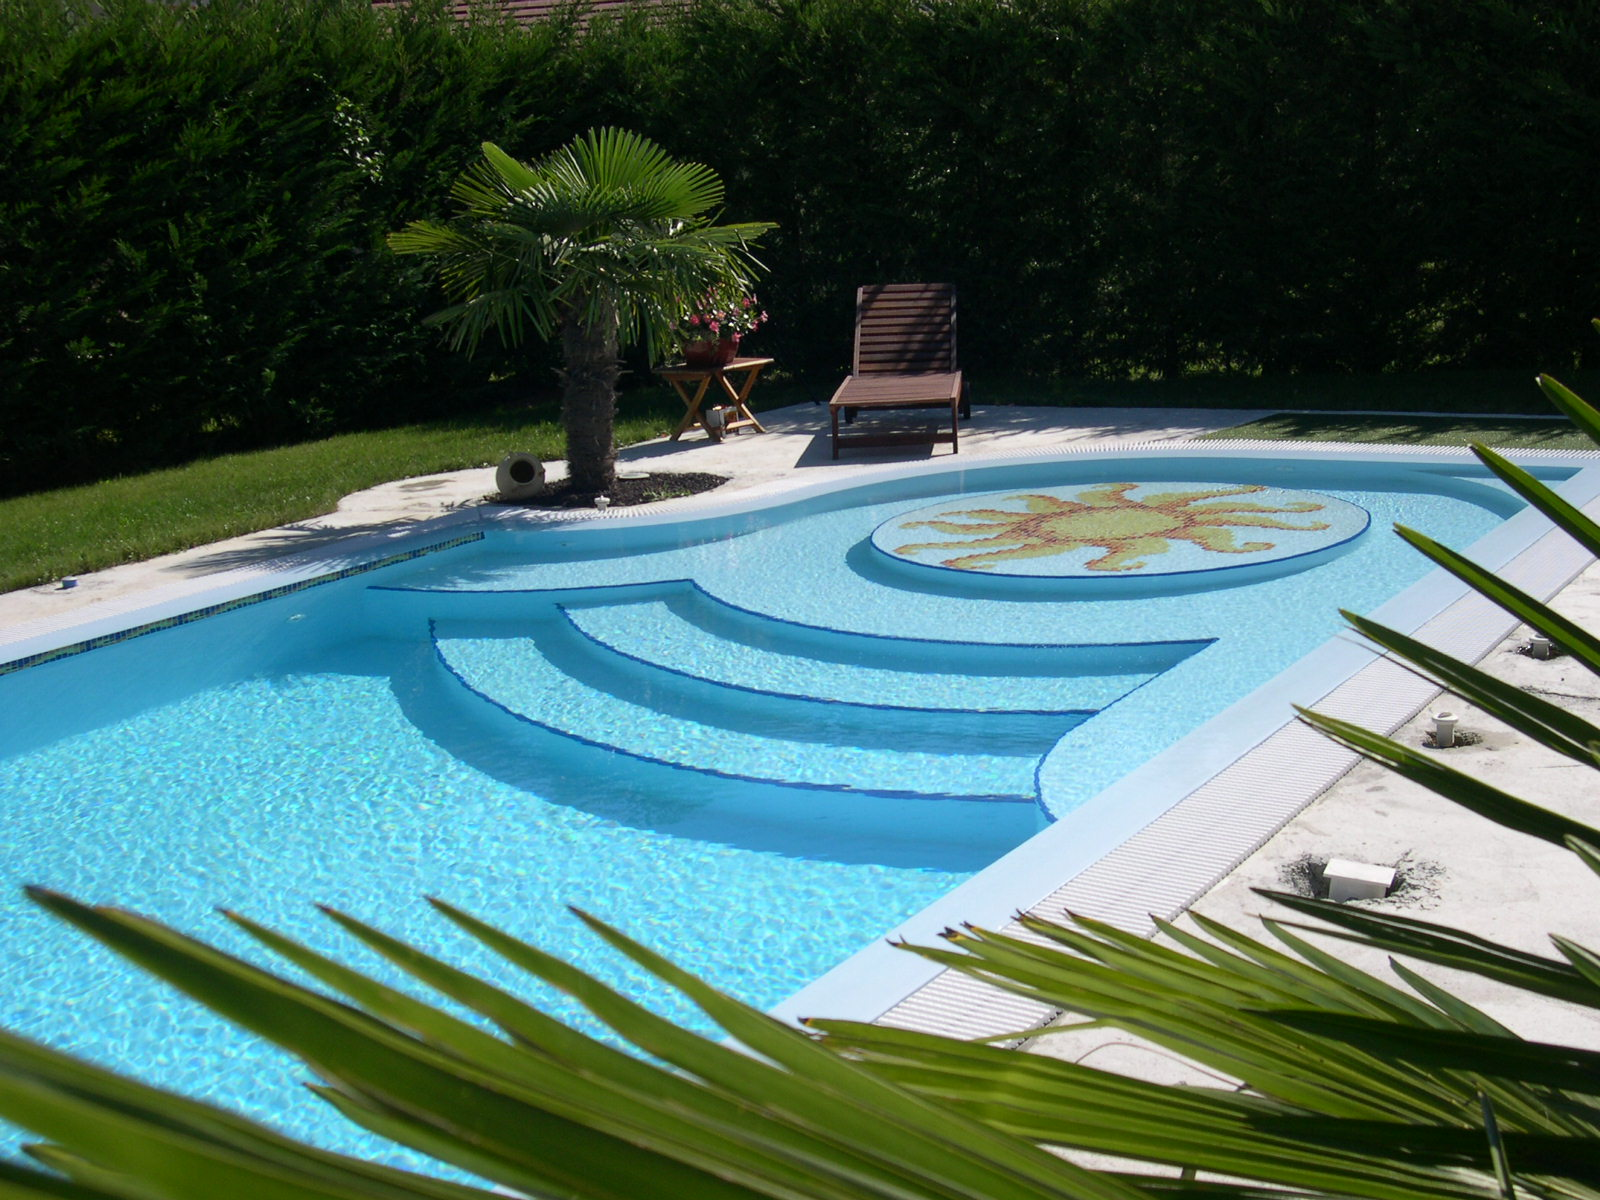 Que choisir piscine en coque ou piscine traditionnelle for Piscine beton ou coque